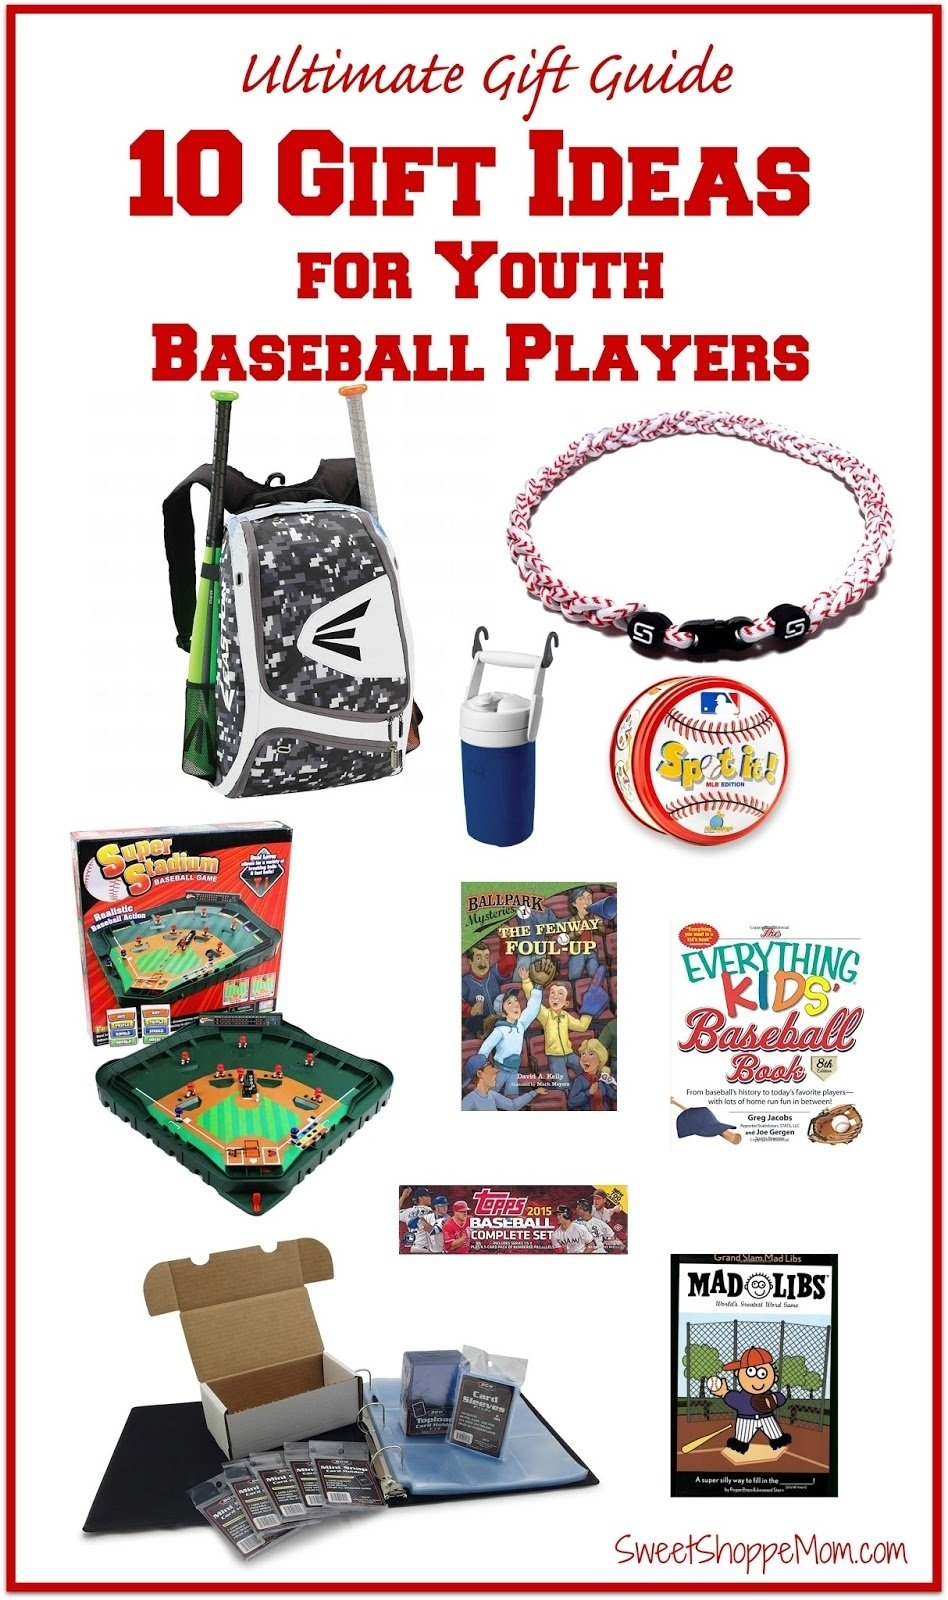 the ultimate gift guide - 10 gift ideas for youth baseball players